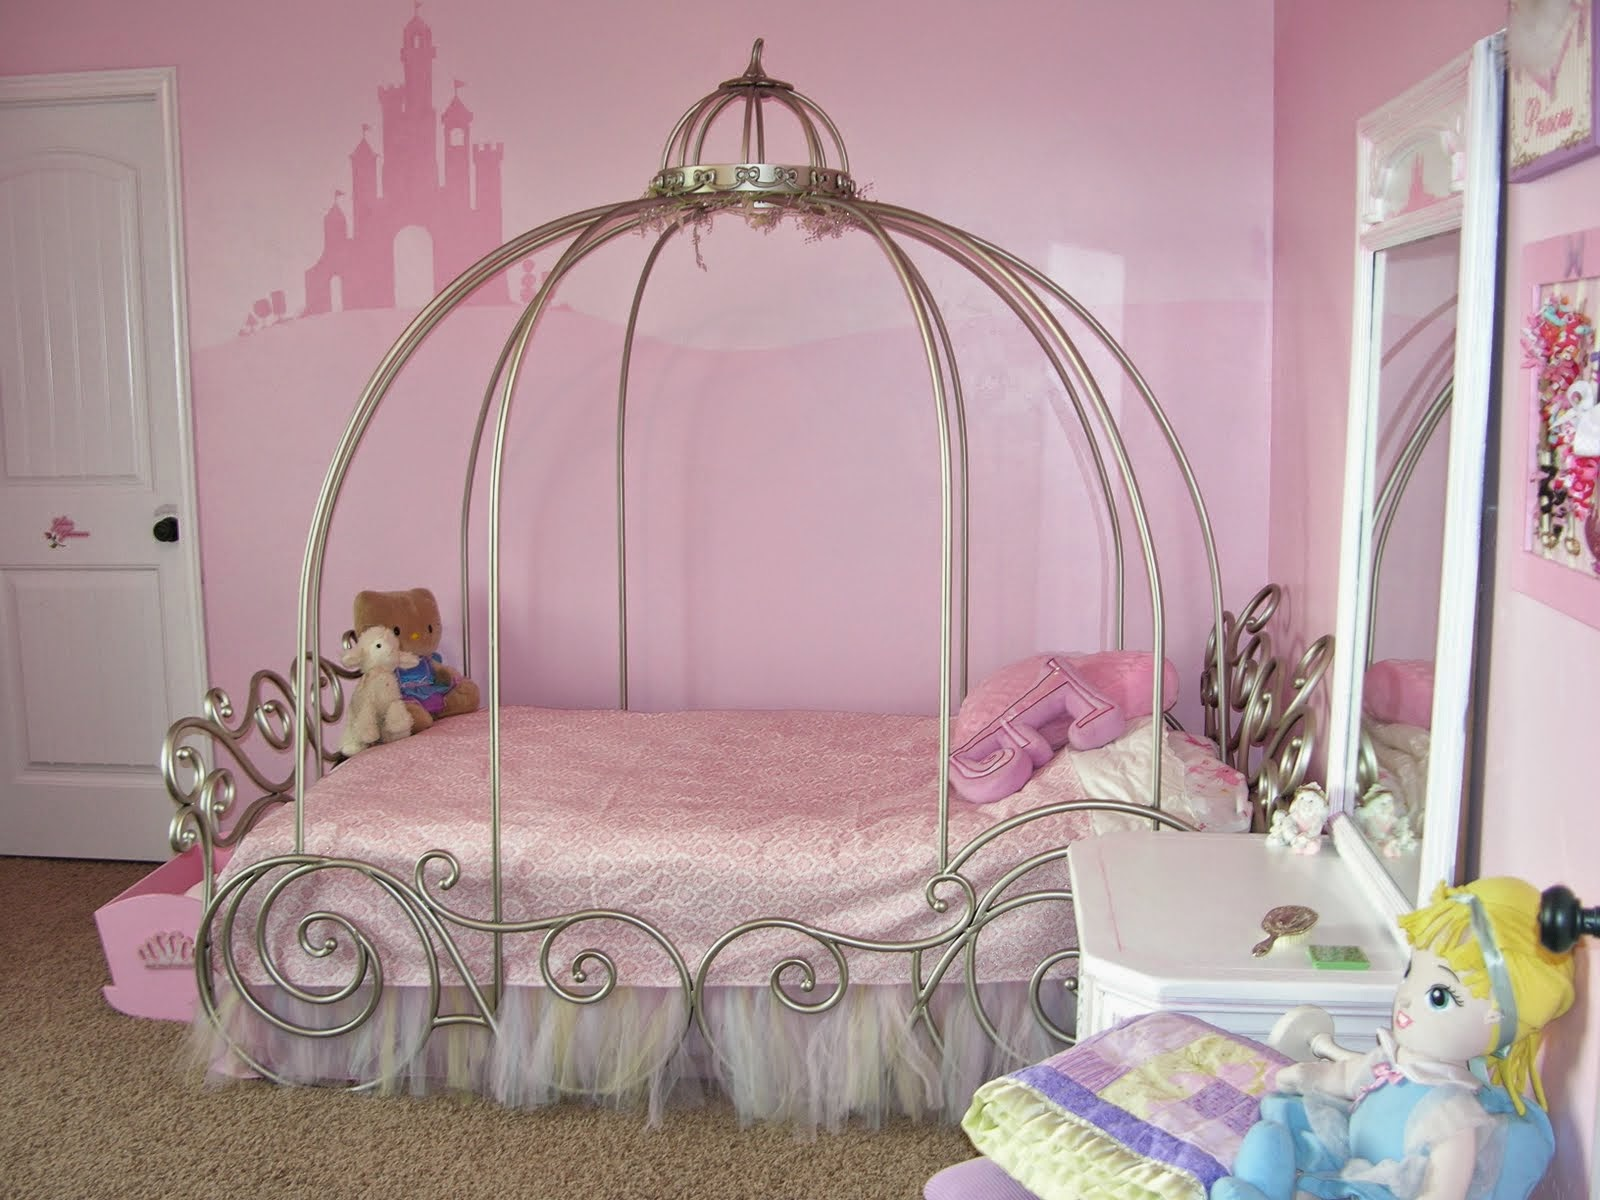 20 little girl 39 s bedroom decorating ideas - Decorating little girls room ...